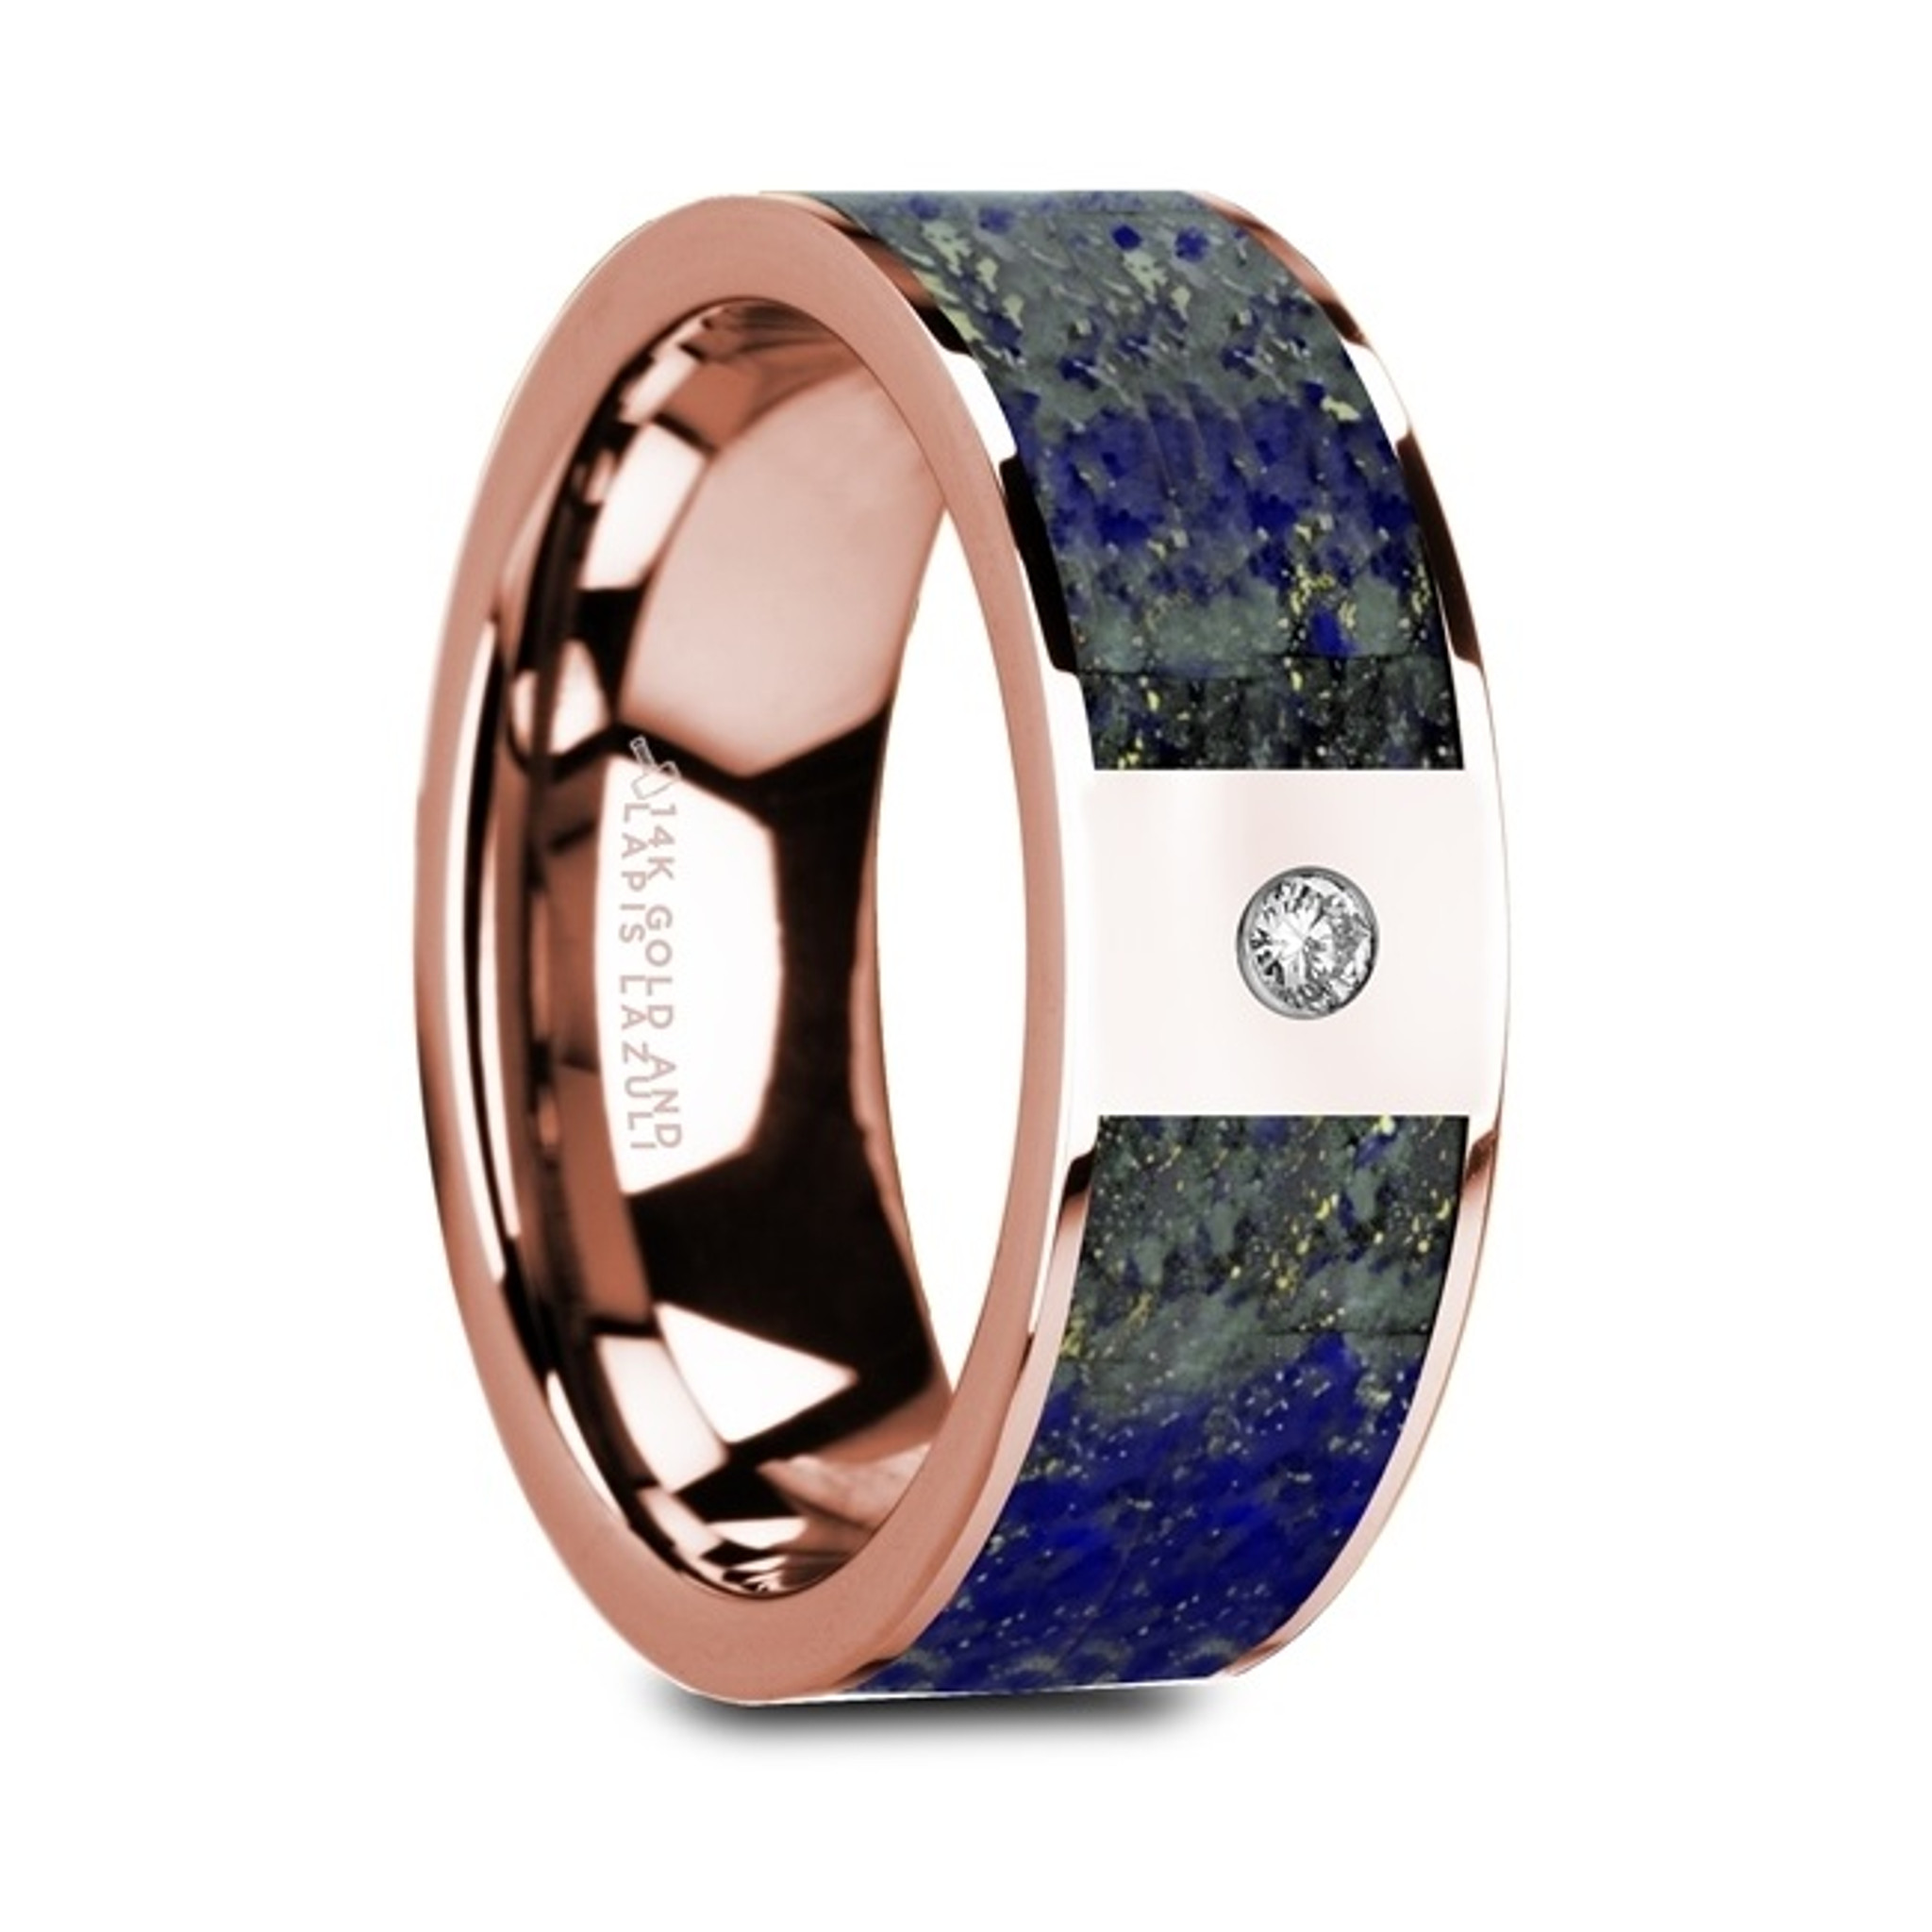 Guneus Flat 14K Rose Gold Ring with Blue Lapis Lazuli Inlay and White Diamond from Vansweden Jewelers